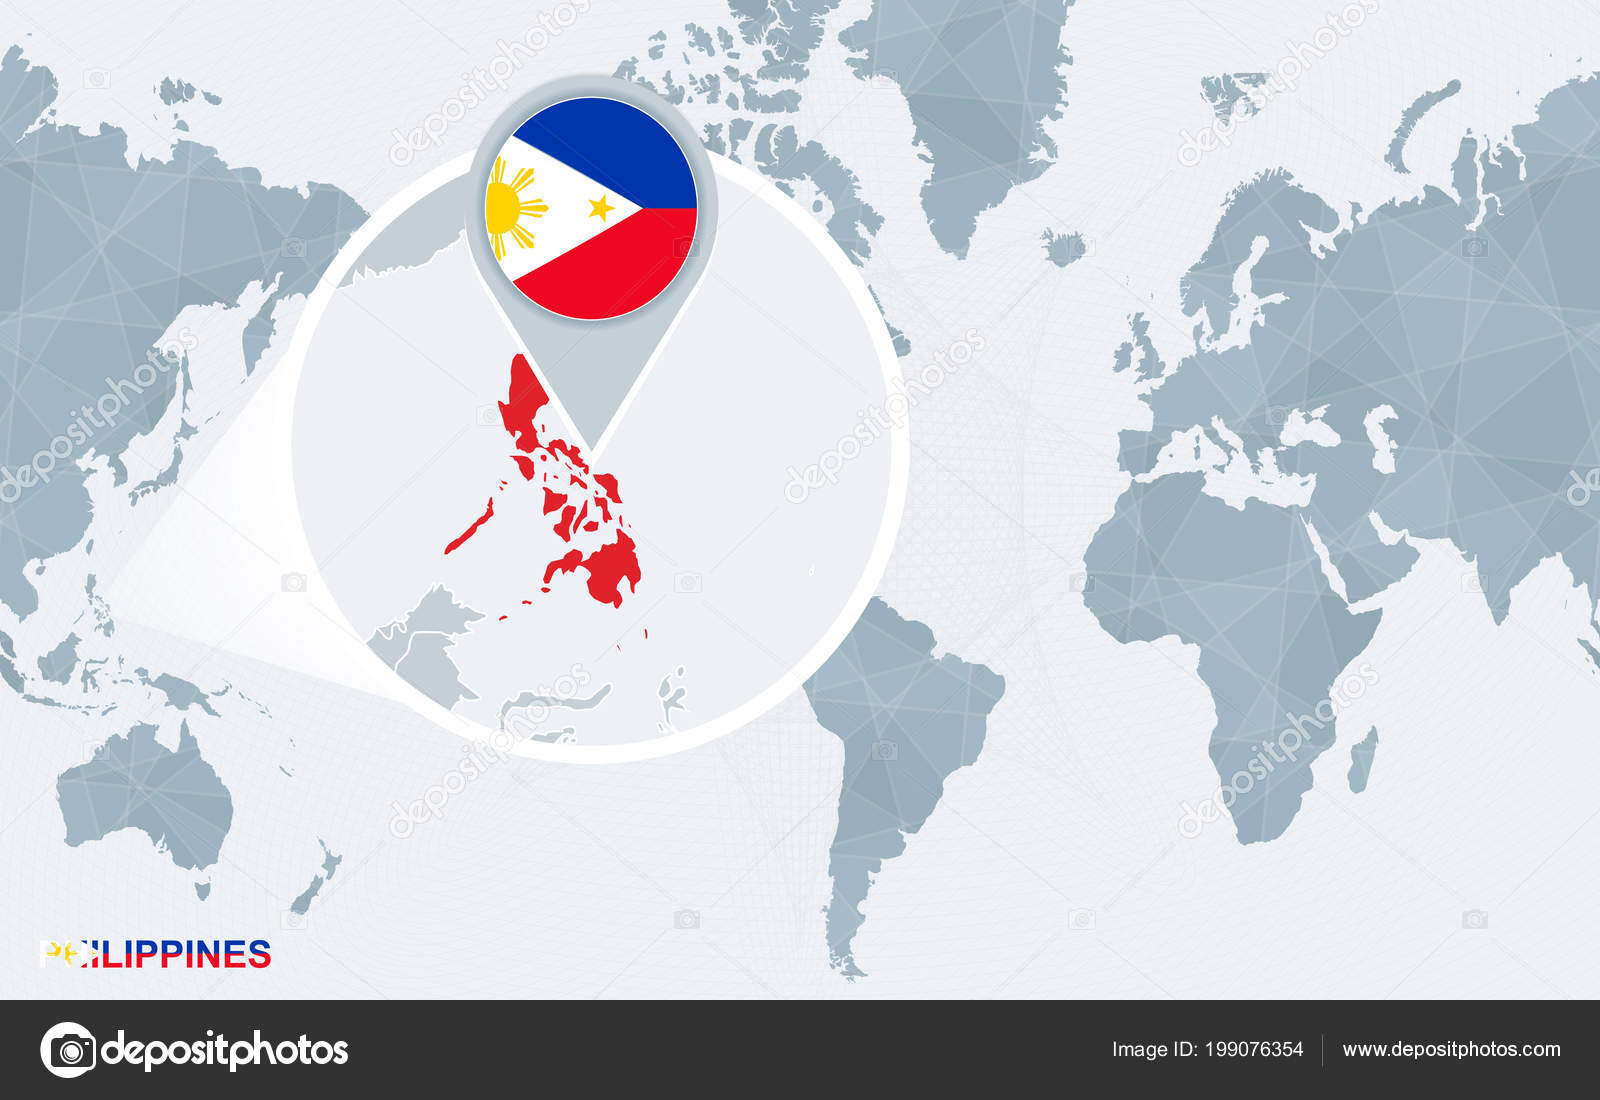 World Map Centered America Magnified Philippines Blue Flag Map ... on greece in philippines, world map in bangladesh, world map in austria, world map in england, world map in chile, library in philippines, world map in japan, world map in vietnam, world map in africa, world map in russia, turkey in philippines, world map in nepal, united kingdom in philippines, world map in nigeria, world map in china, calendar in philippines, world map in france, space in philippines, world map in norway, events in philippines,